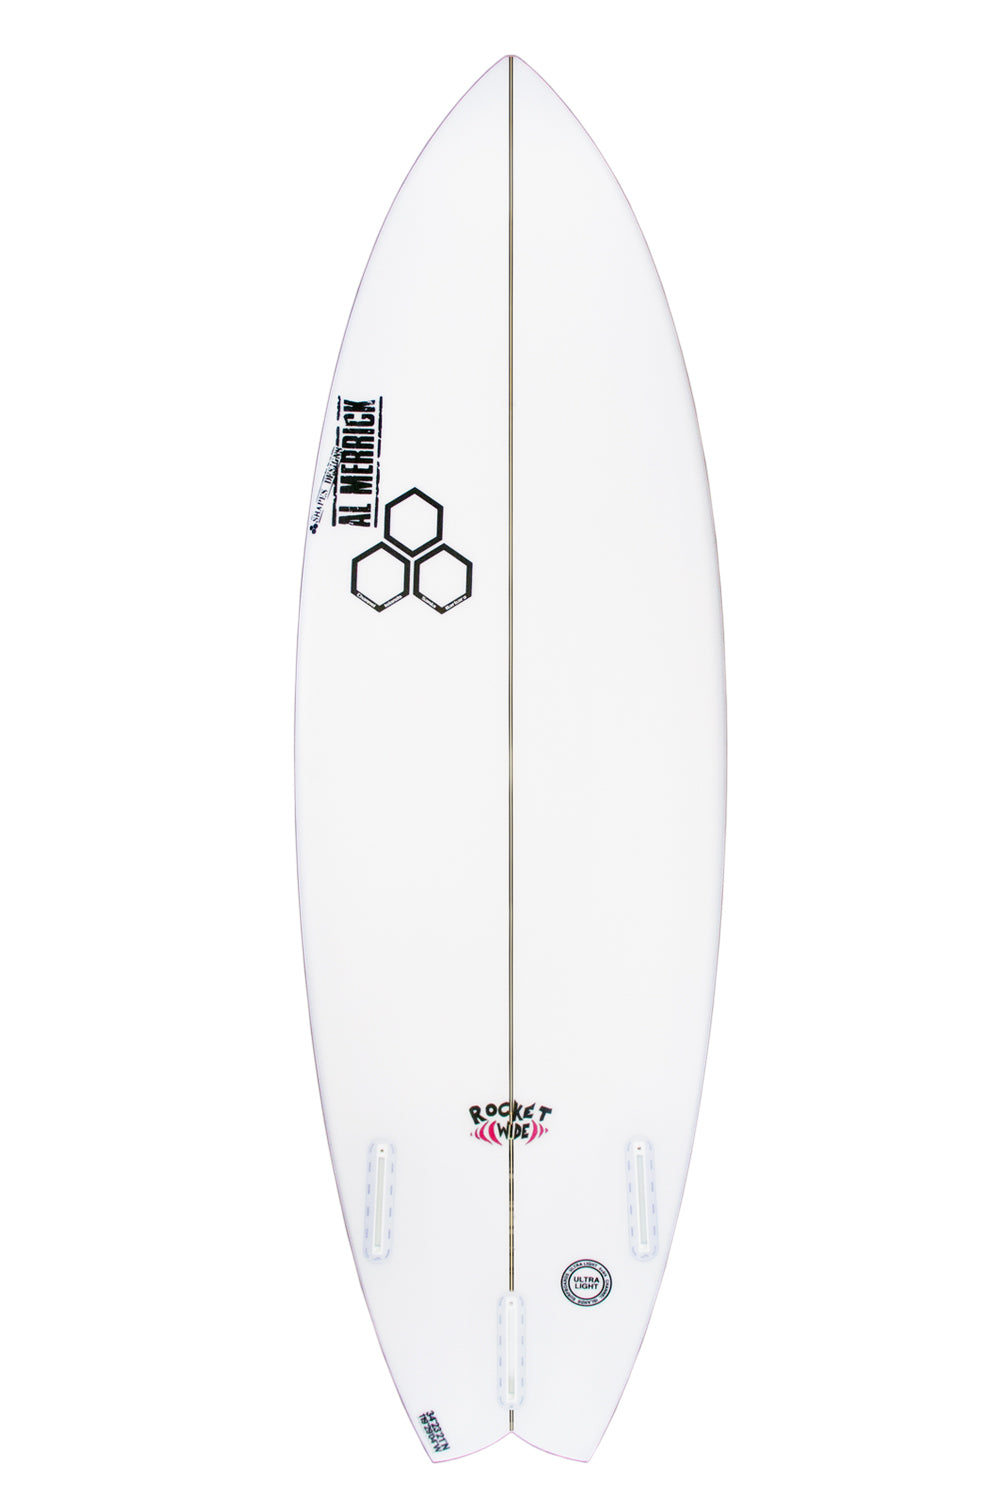 Channel Islands Rocket Wide Surfboard